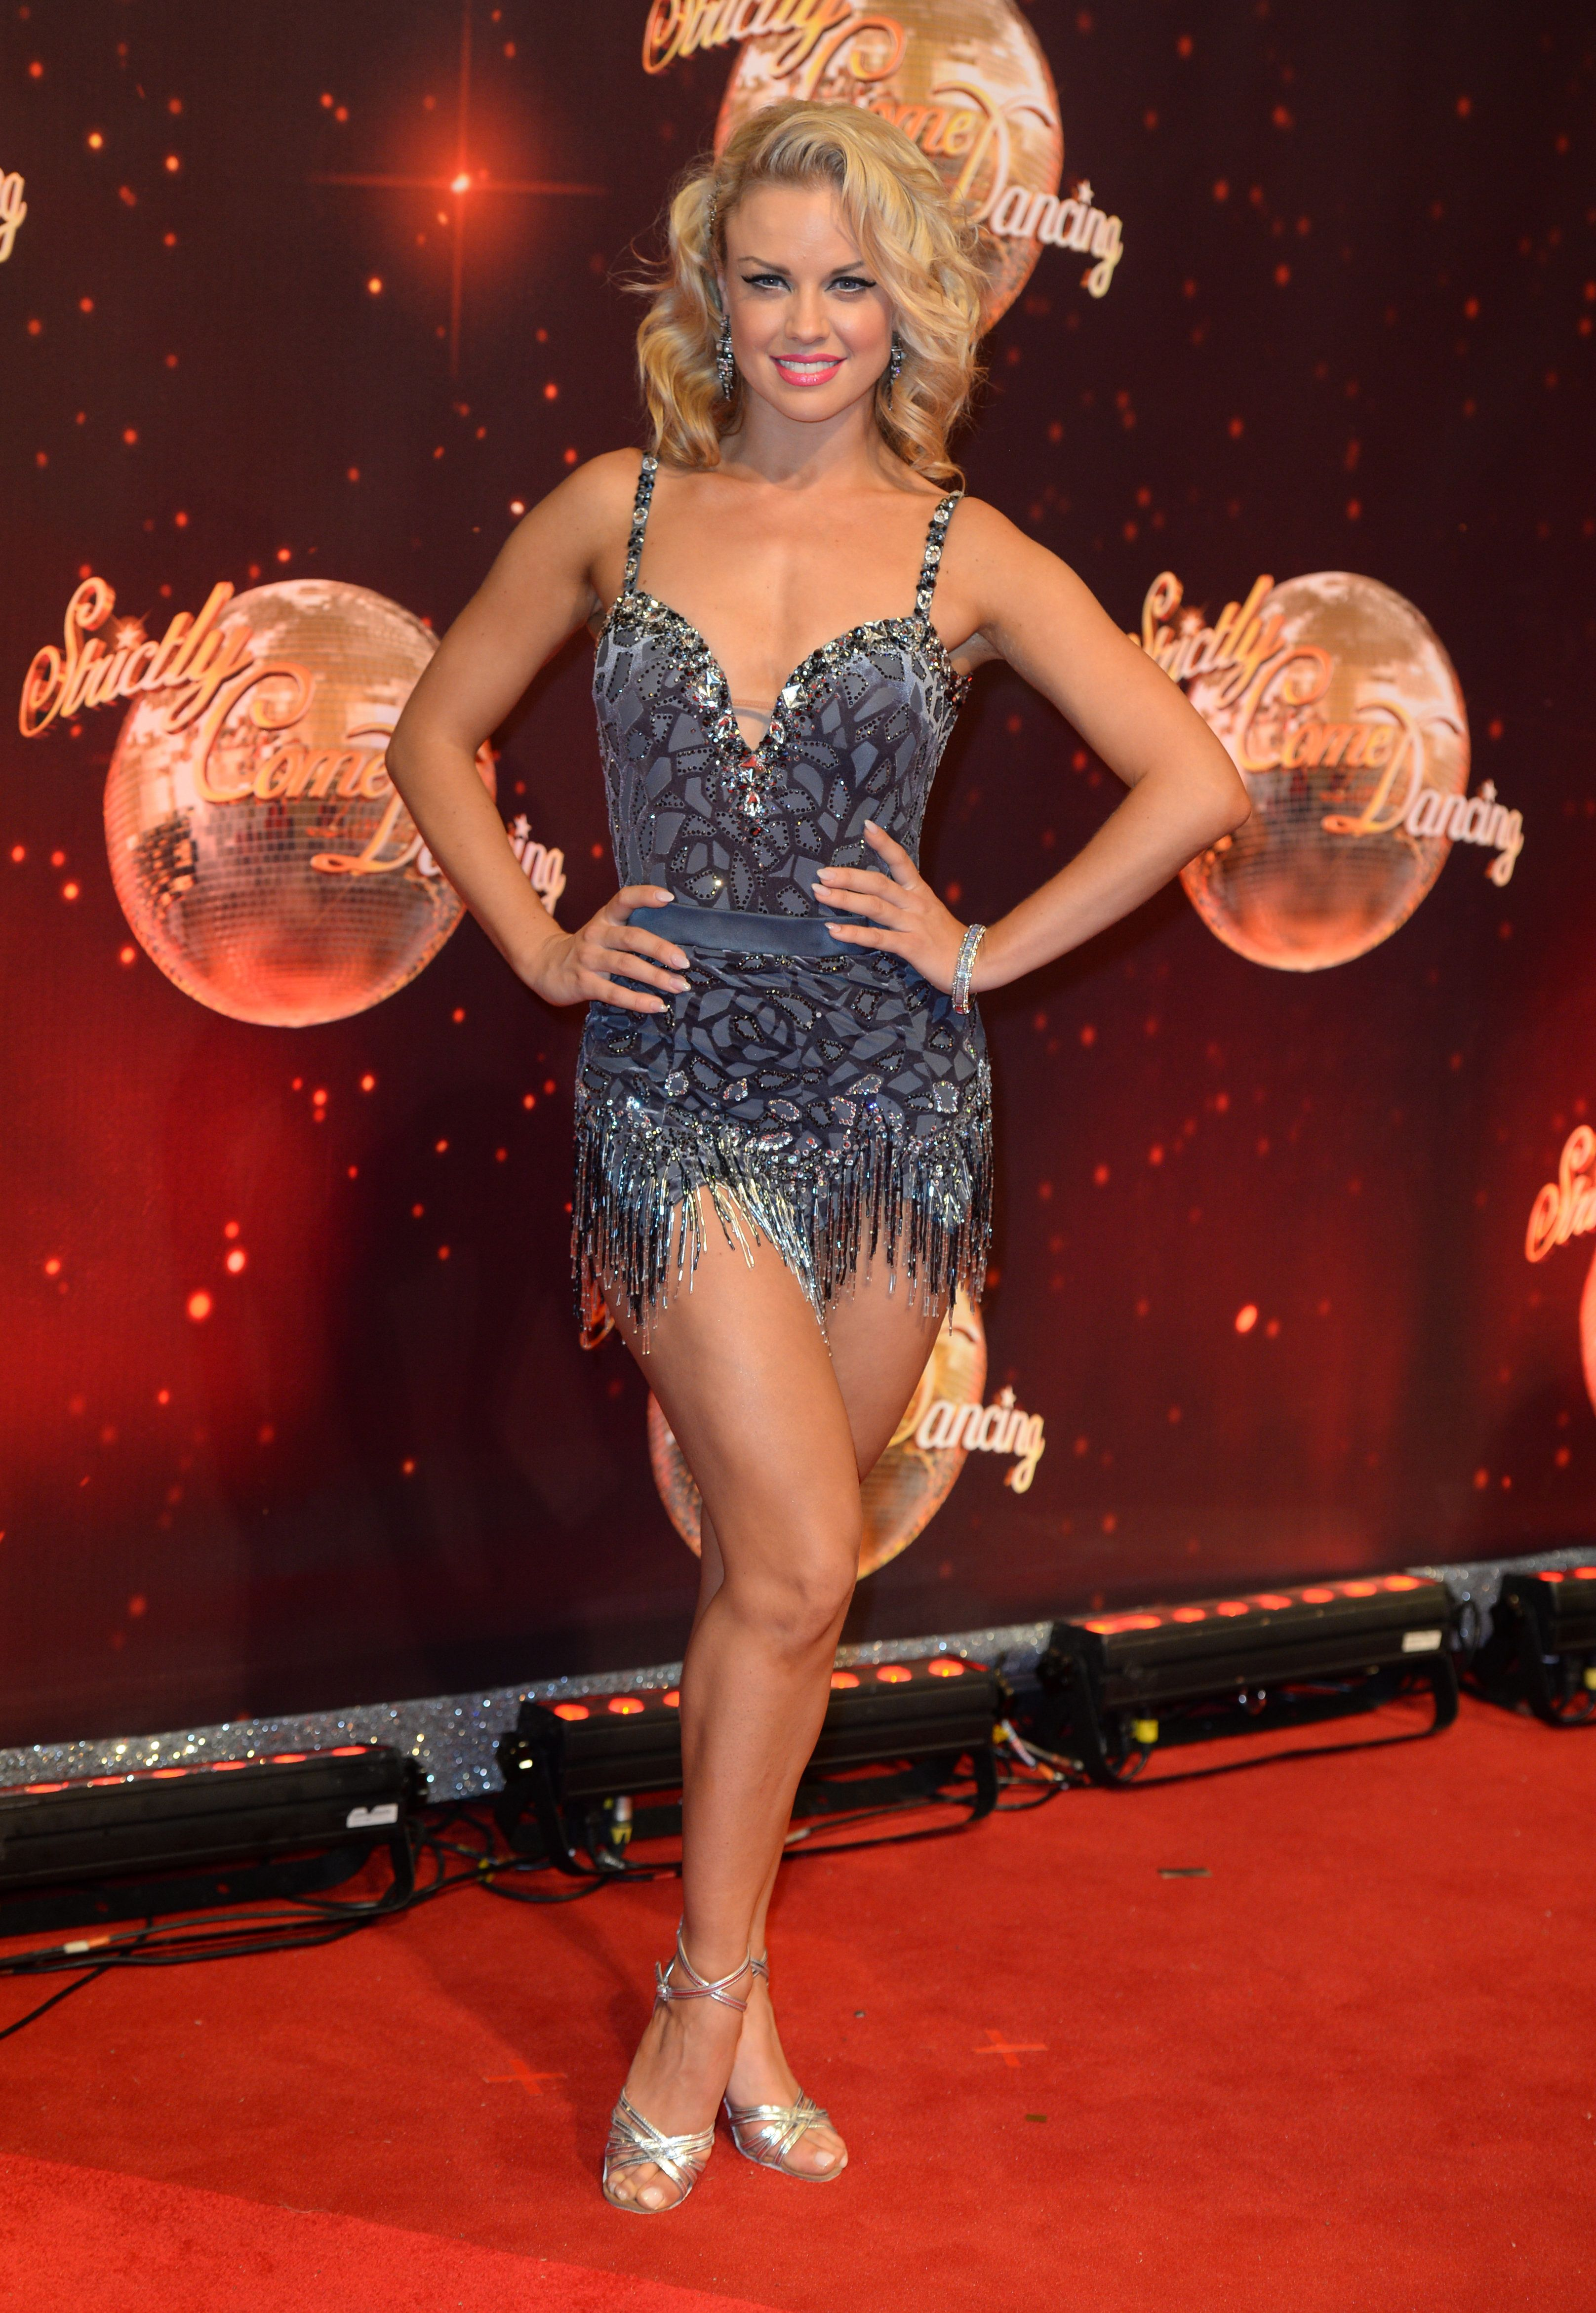 The 'Strictly' Curse Strikes Again As Joanne Clifton Splits From